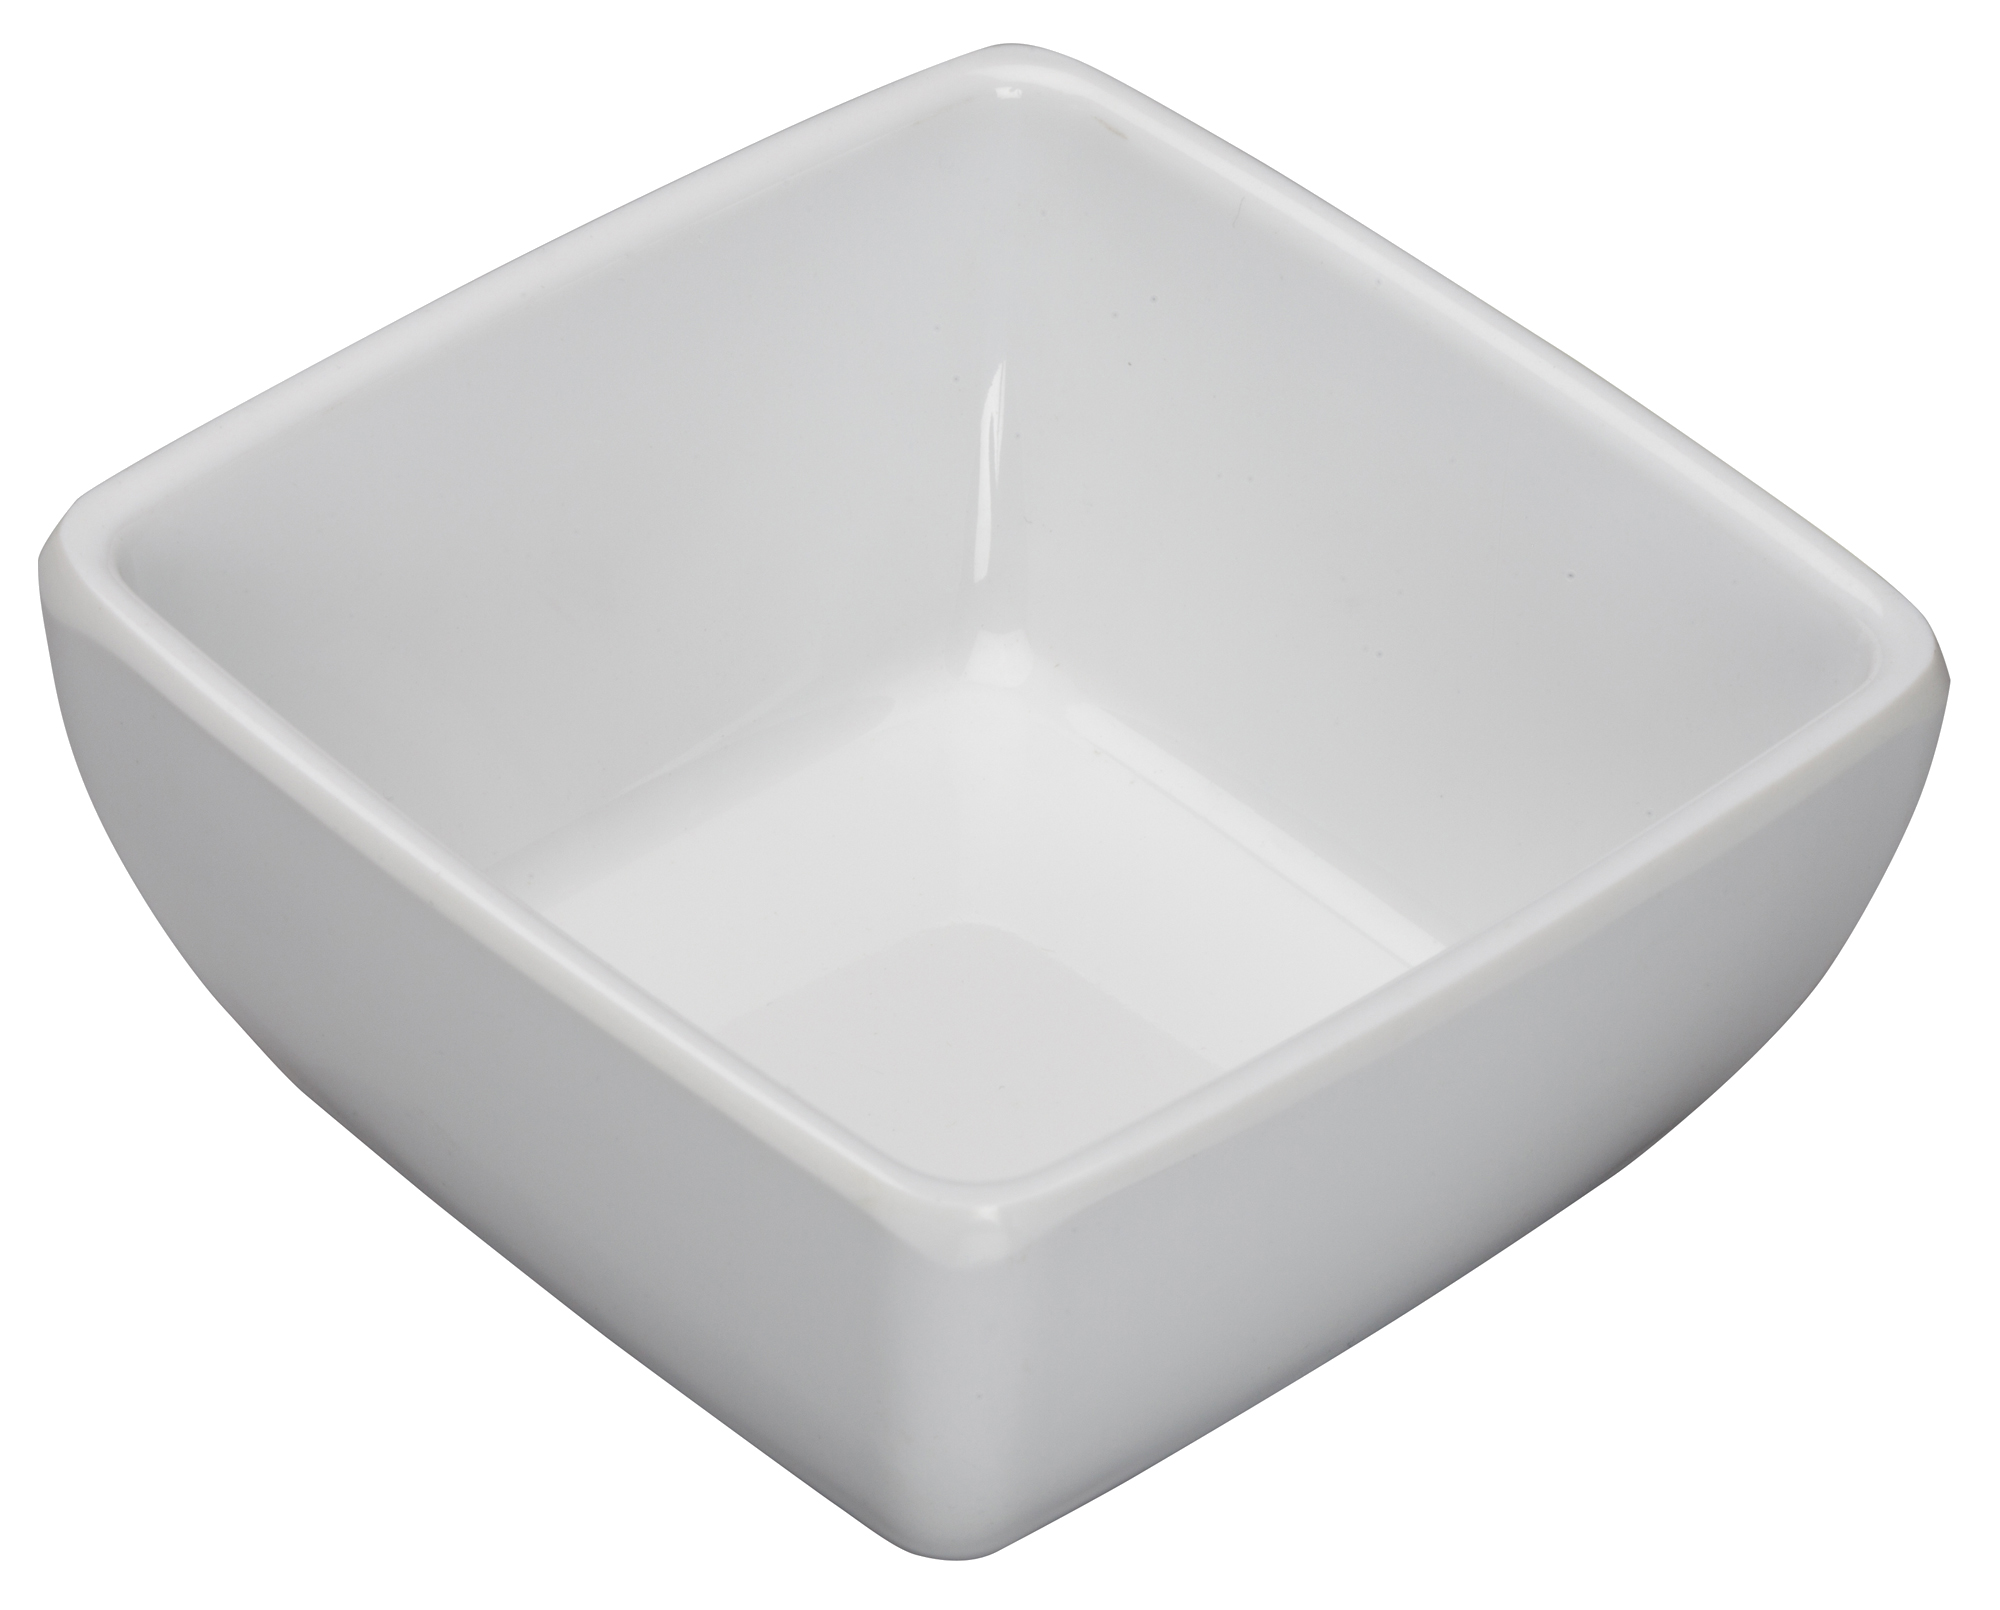 Winco WDM009-202 bowl, plastic,  0 - 31 oz